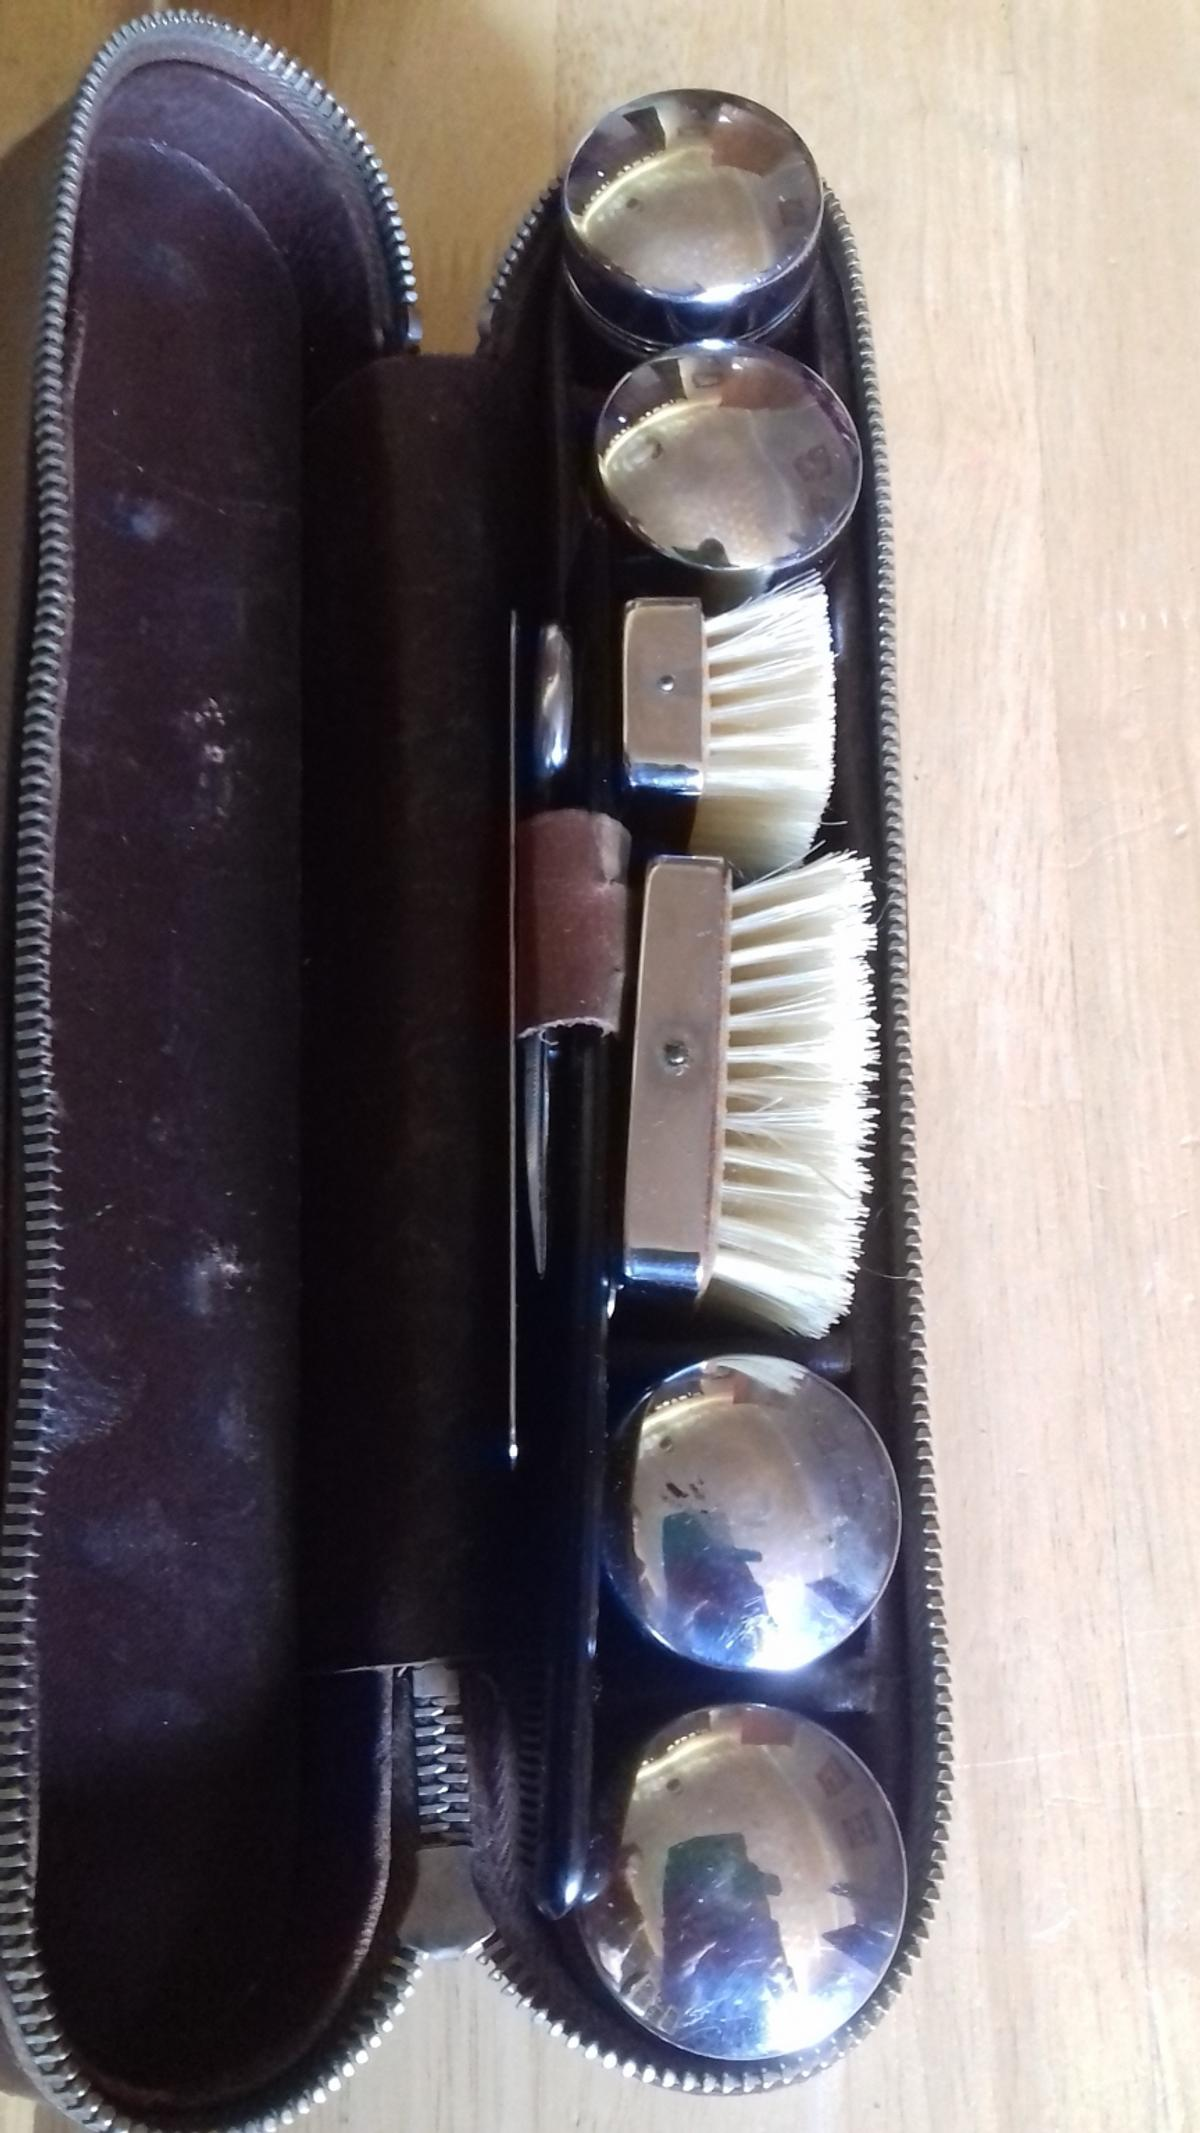 Vintage Gents Grooming Kit in Leather Case